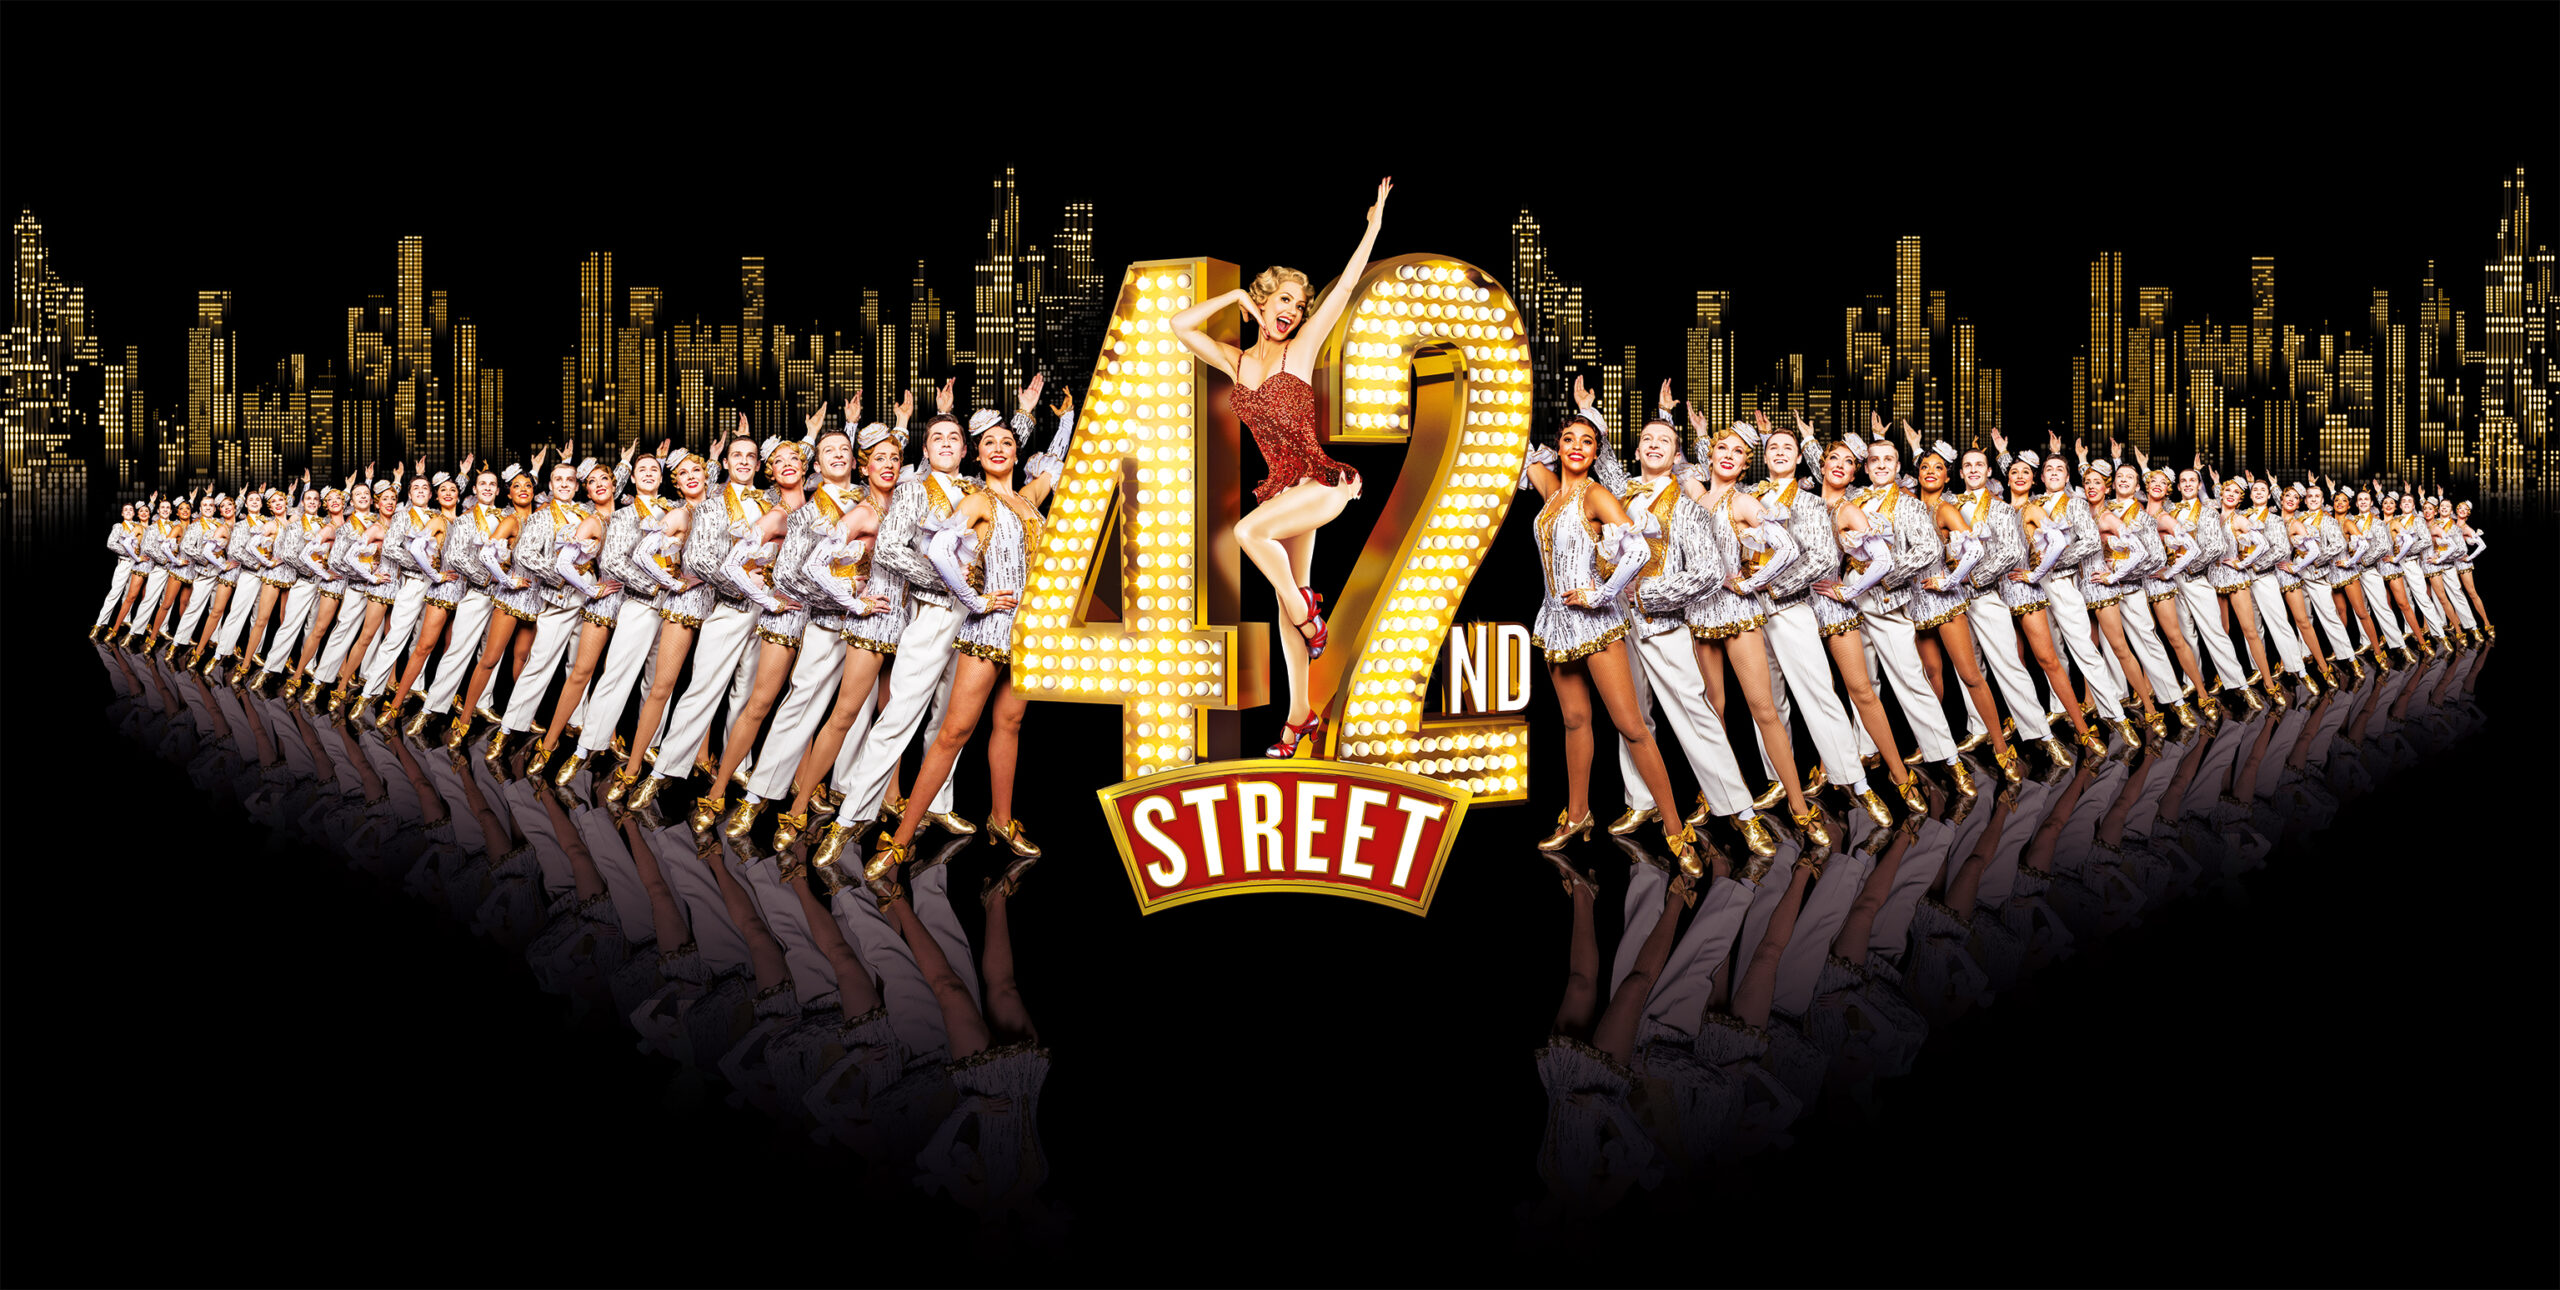 42nd Street - Stream now on Stage 2 View